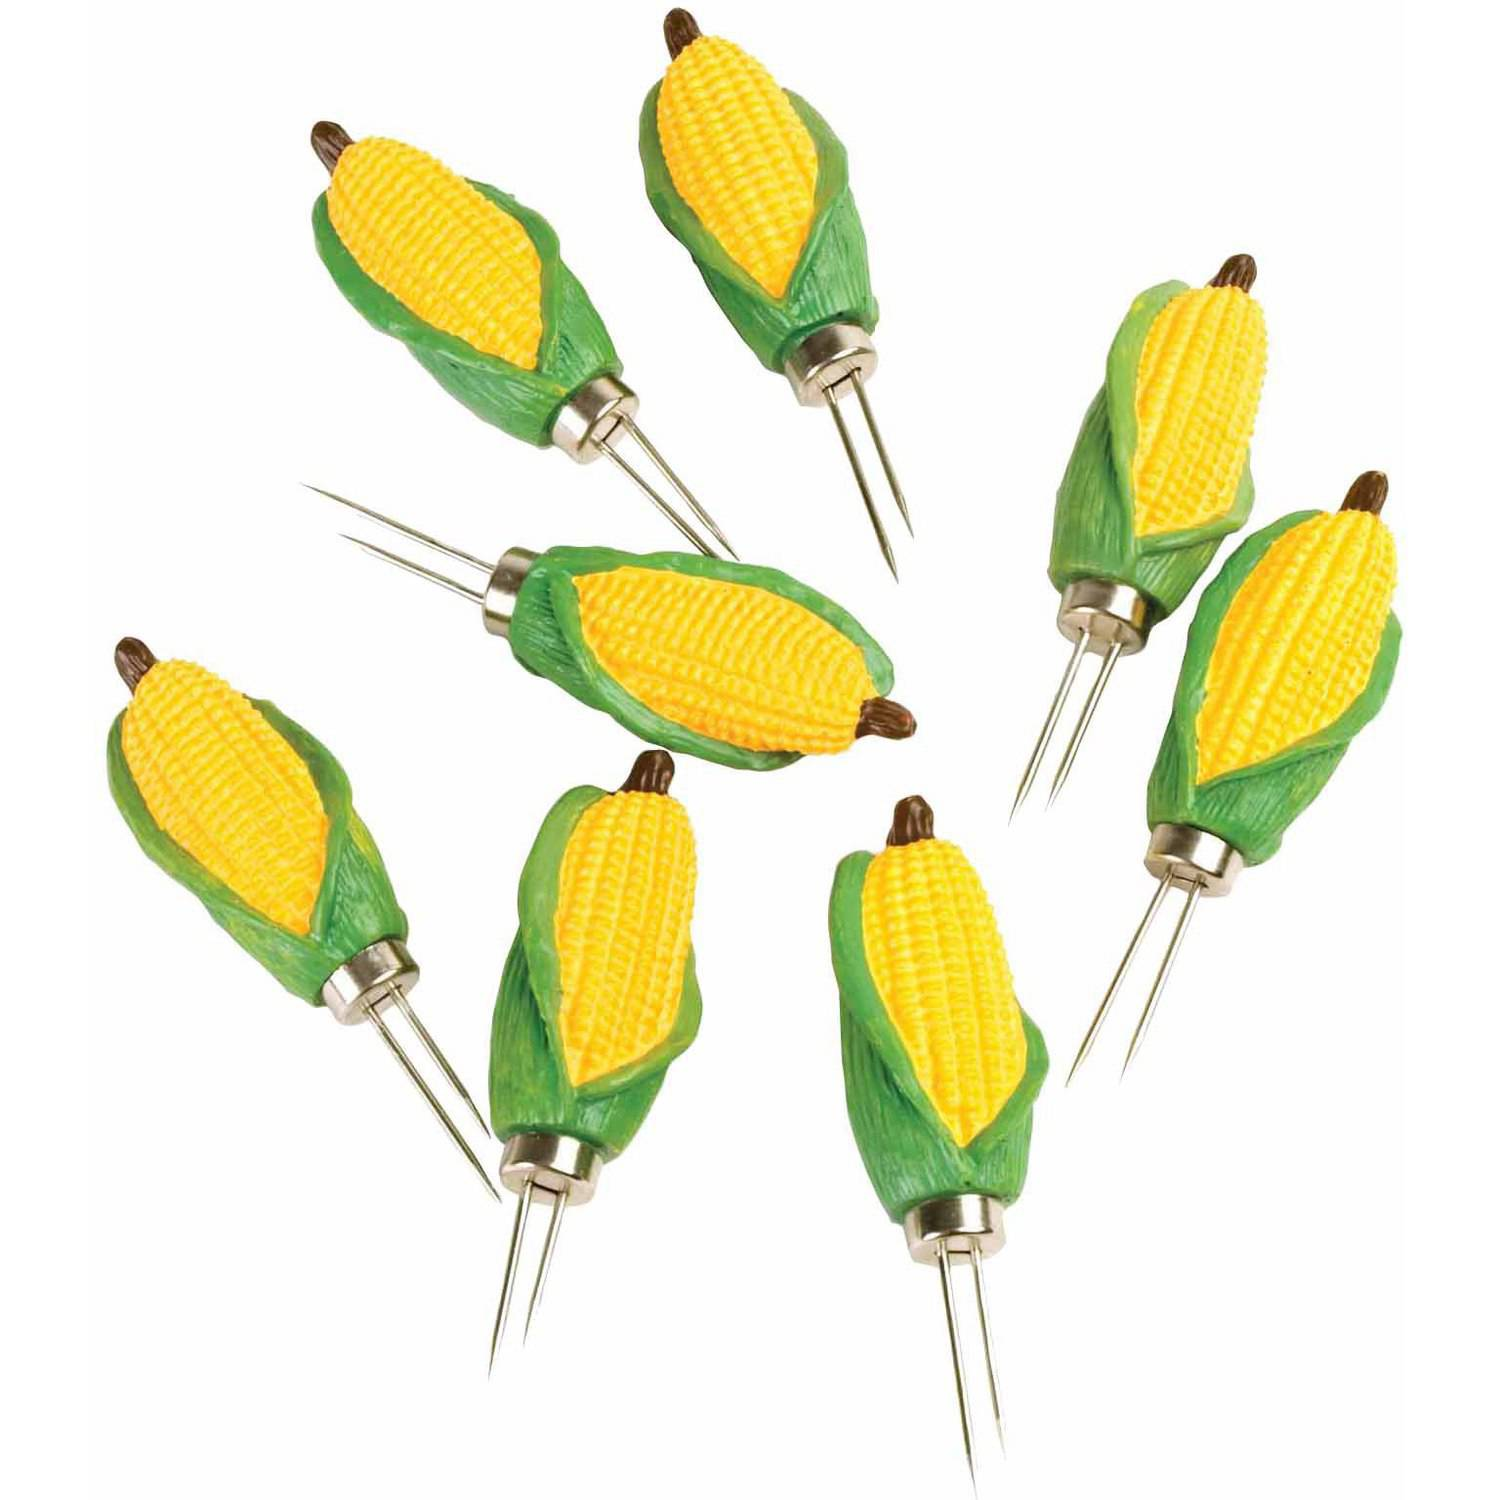 The Charcoal Companion Classic Mini-Corn Corn Holders, 4 Pairs, CC5038